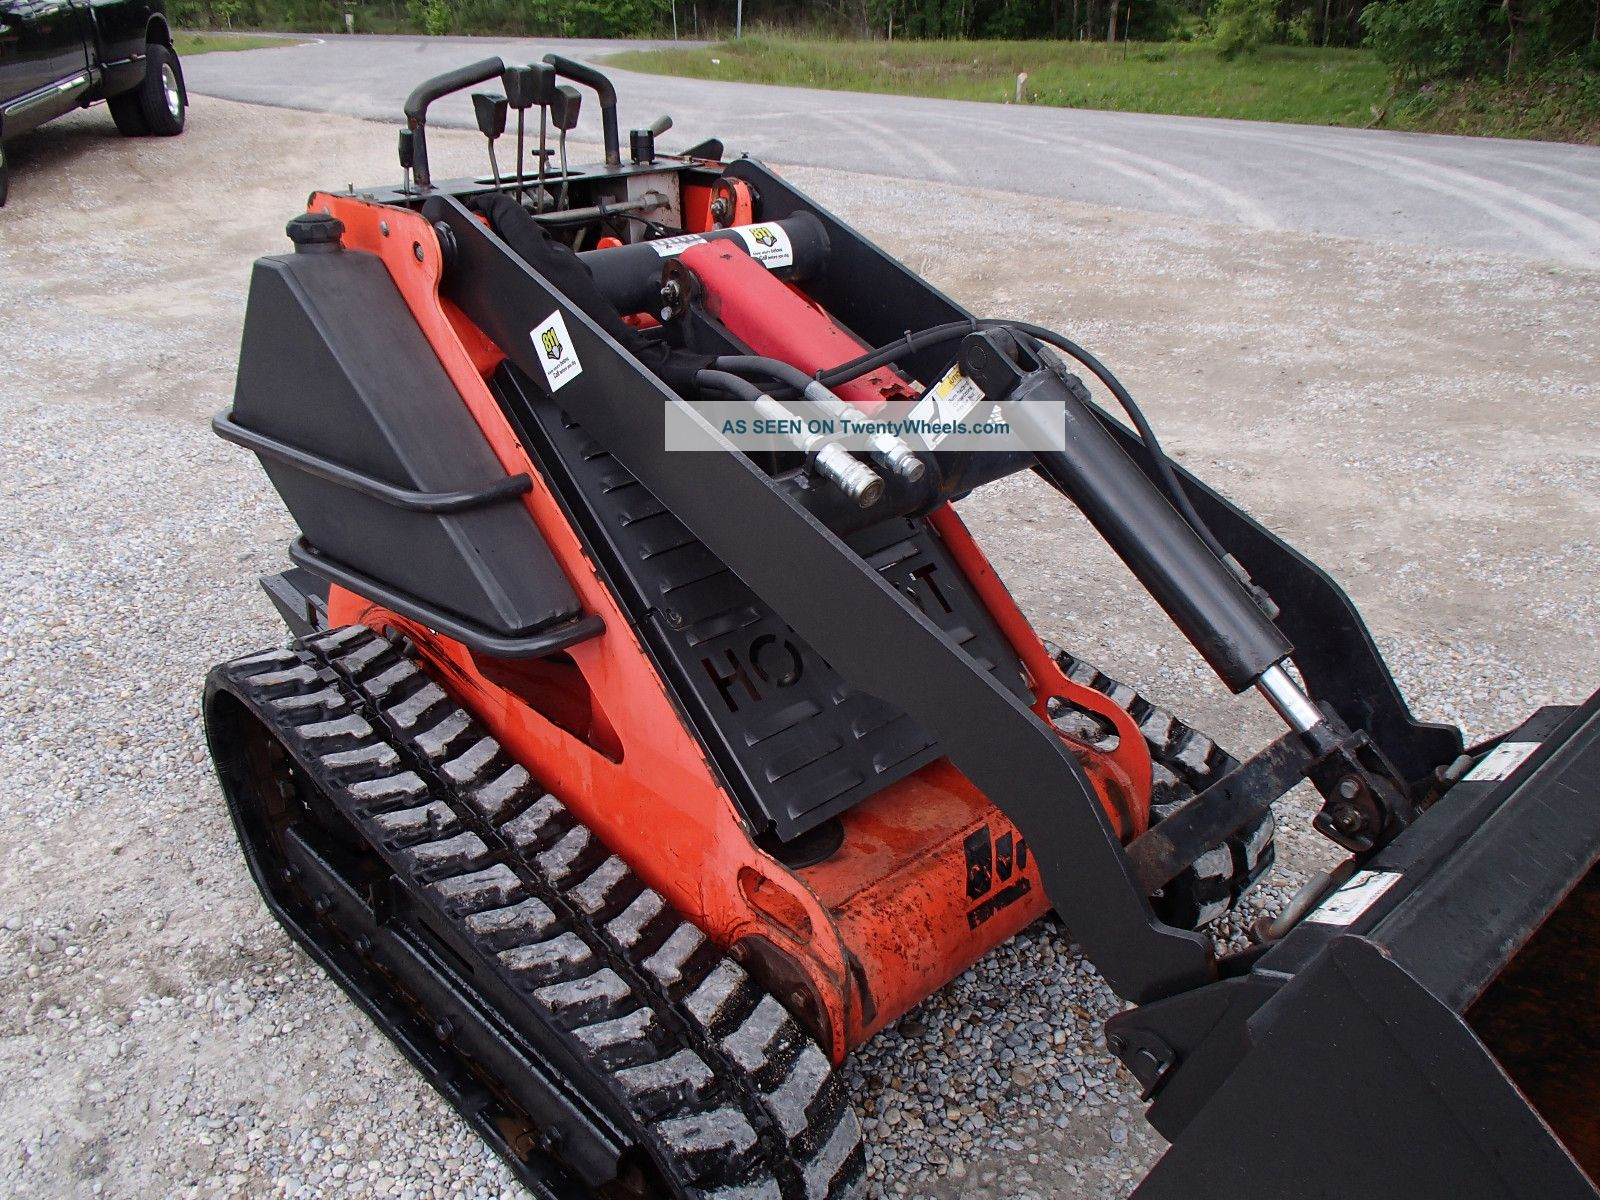 Mini Skid Steer : Mertz boxer mini track skid steer loader construction